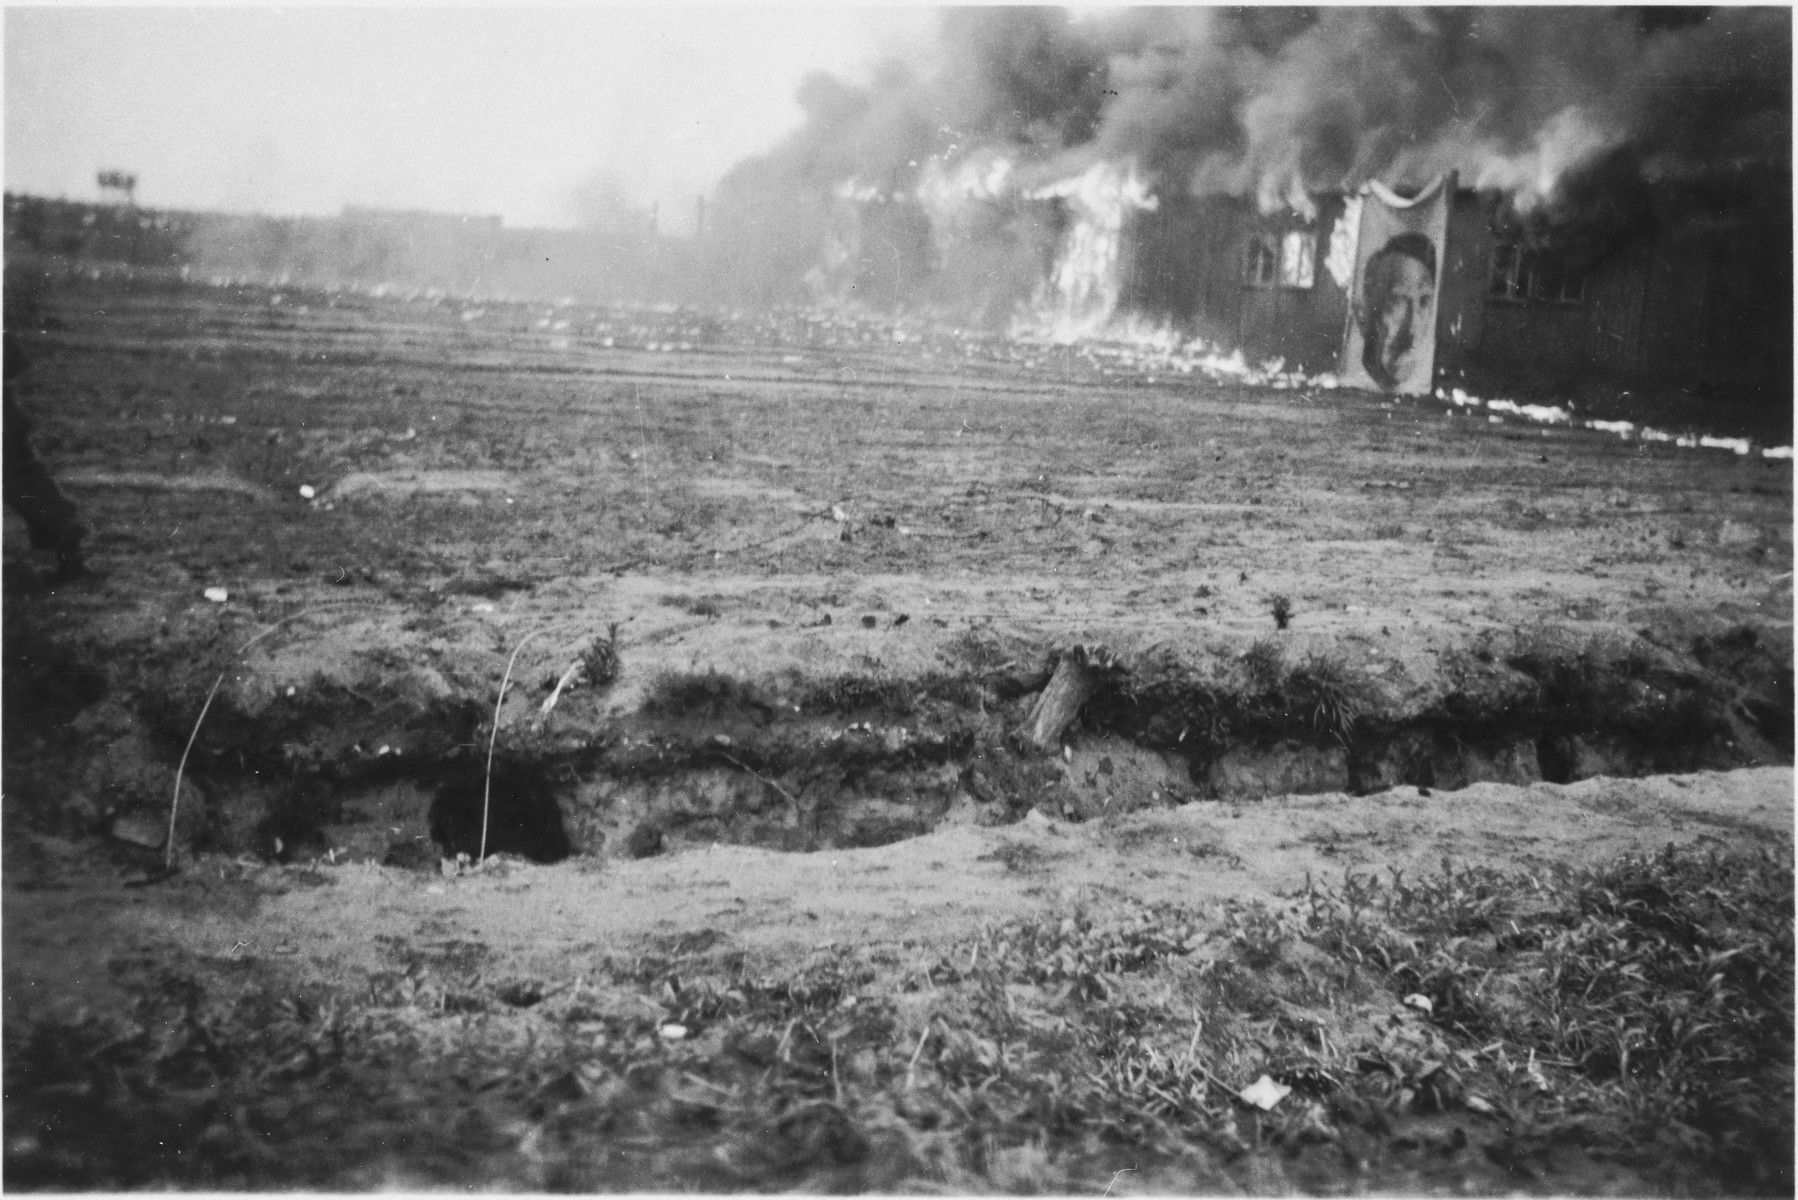 Fire consumes a barracks in the Bergen-Belsen concentration camp decorated with a wall size portrait of Adolf Hitler.    The barracks were burned to control the spread of epidemics.